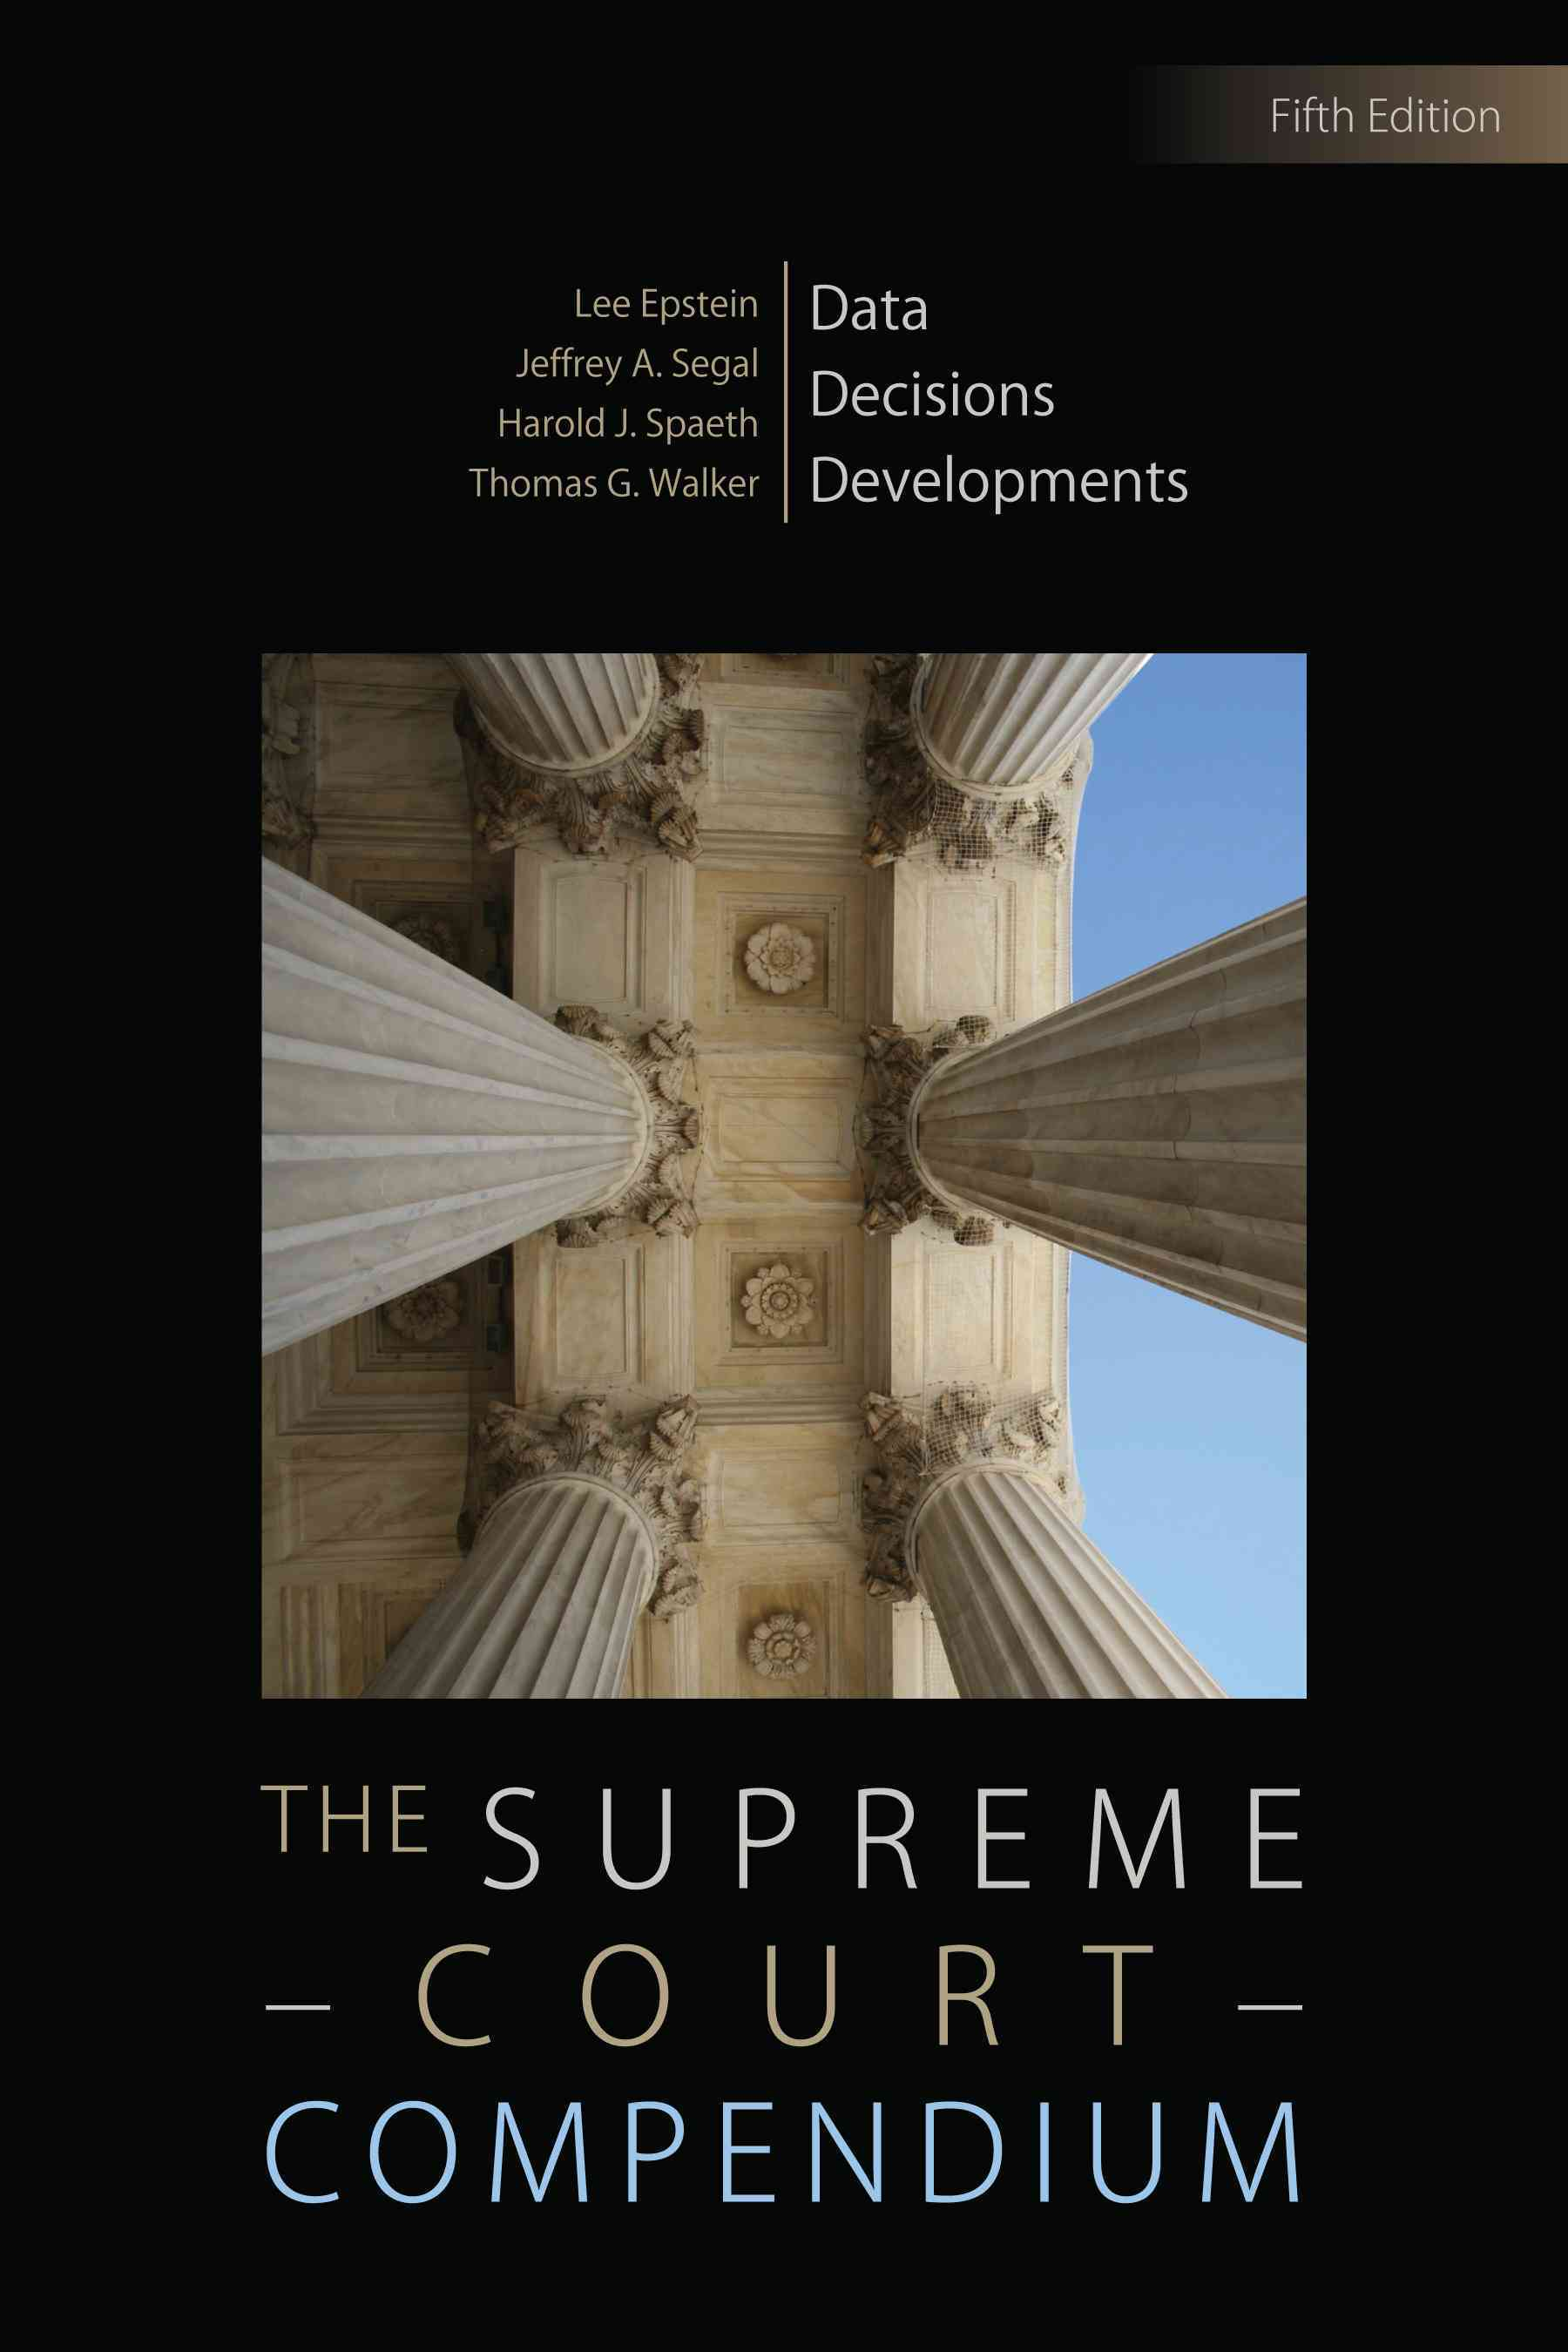 The Supreme Court Compendium: Data, Decisions, and Developments (Hardcover)